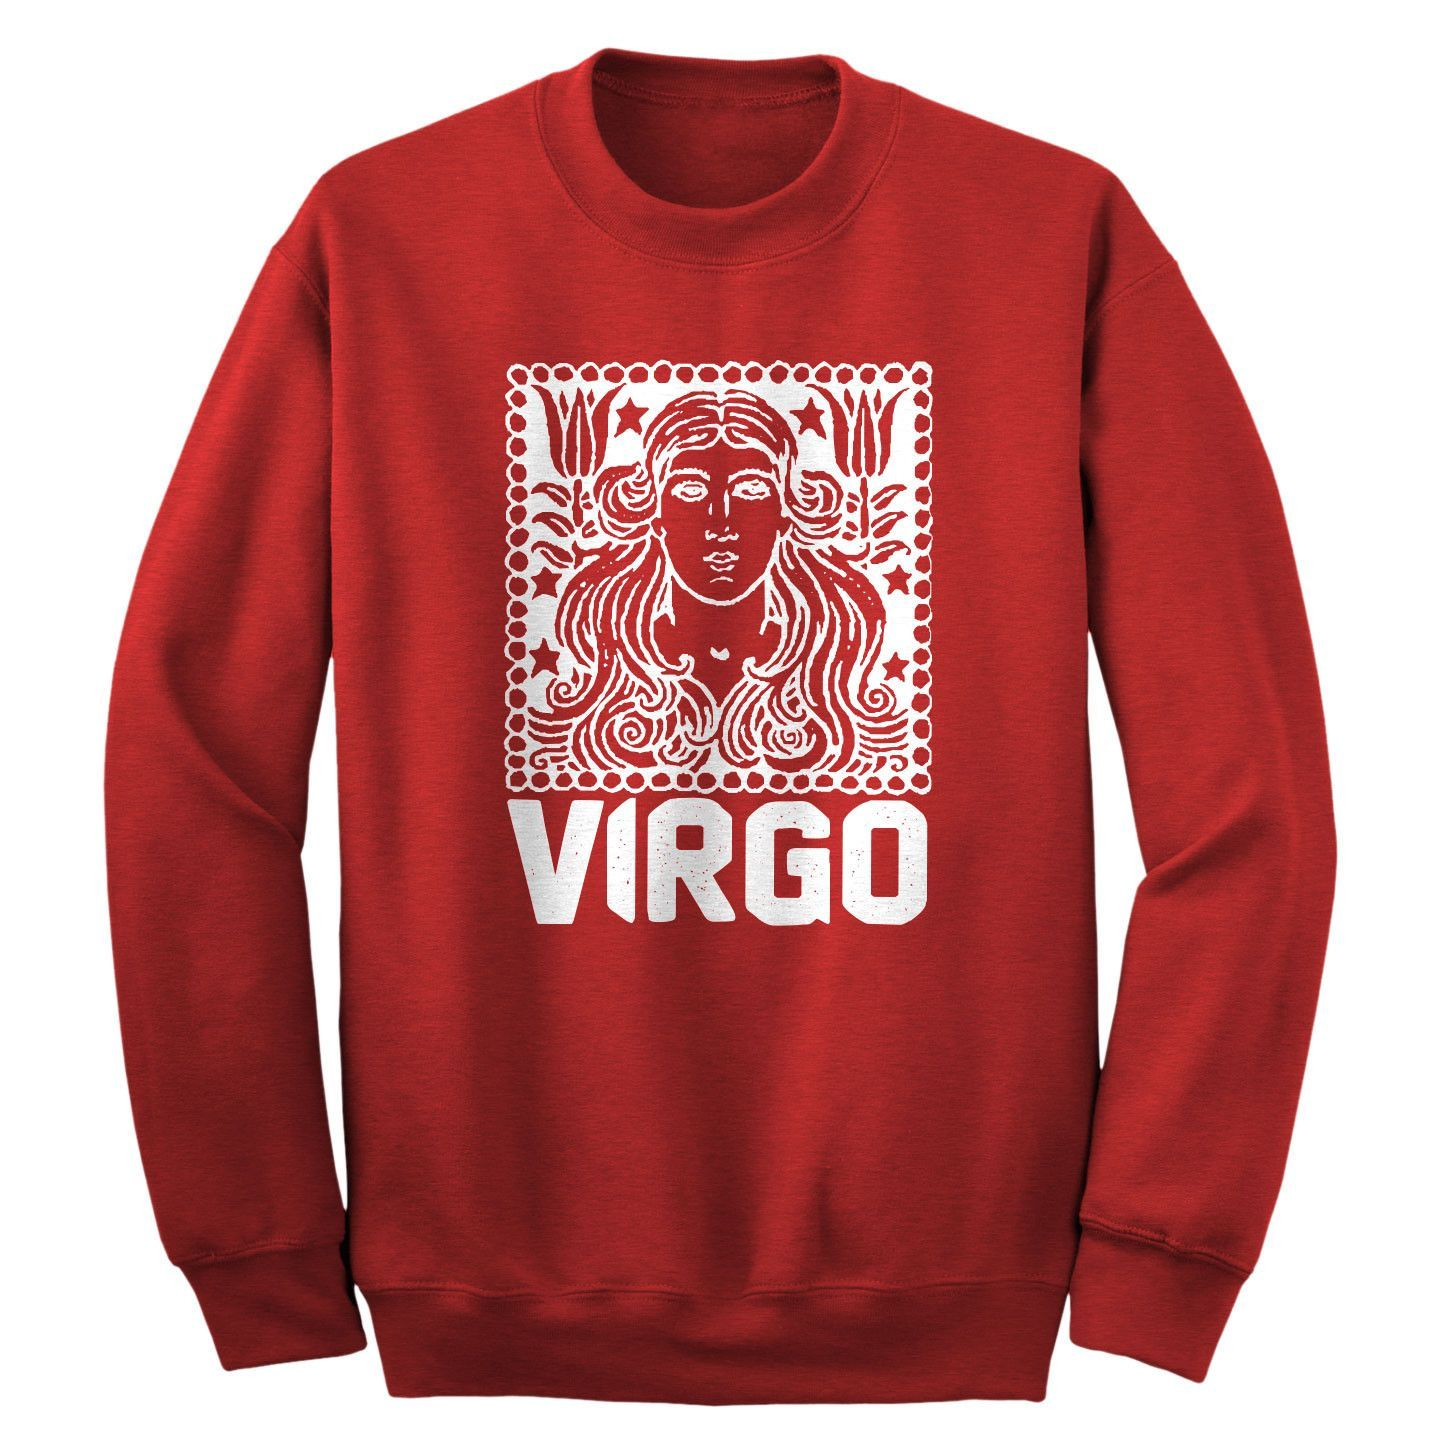 Virgo Zodiac Astrology Adult Crewneck Sweatshirt